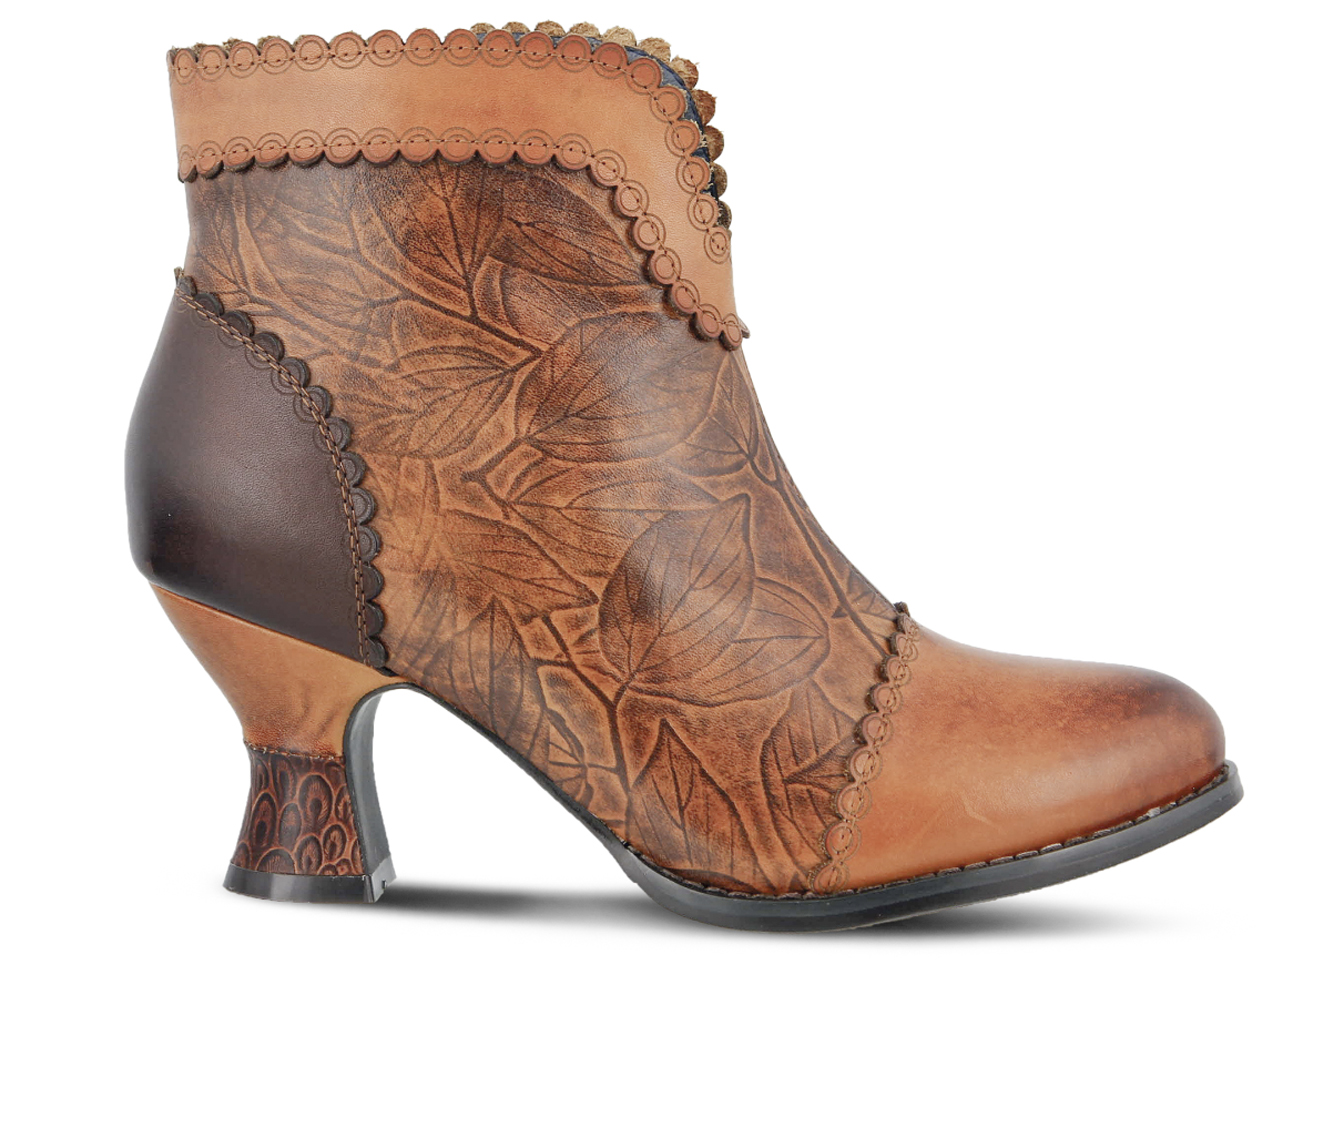 L'Artiste Leafeel Women's Boots (Brown Leather)